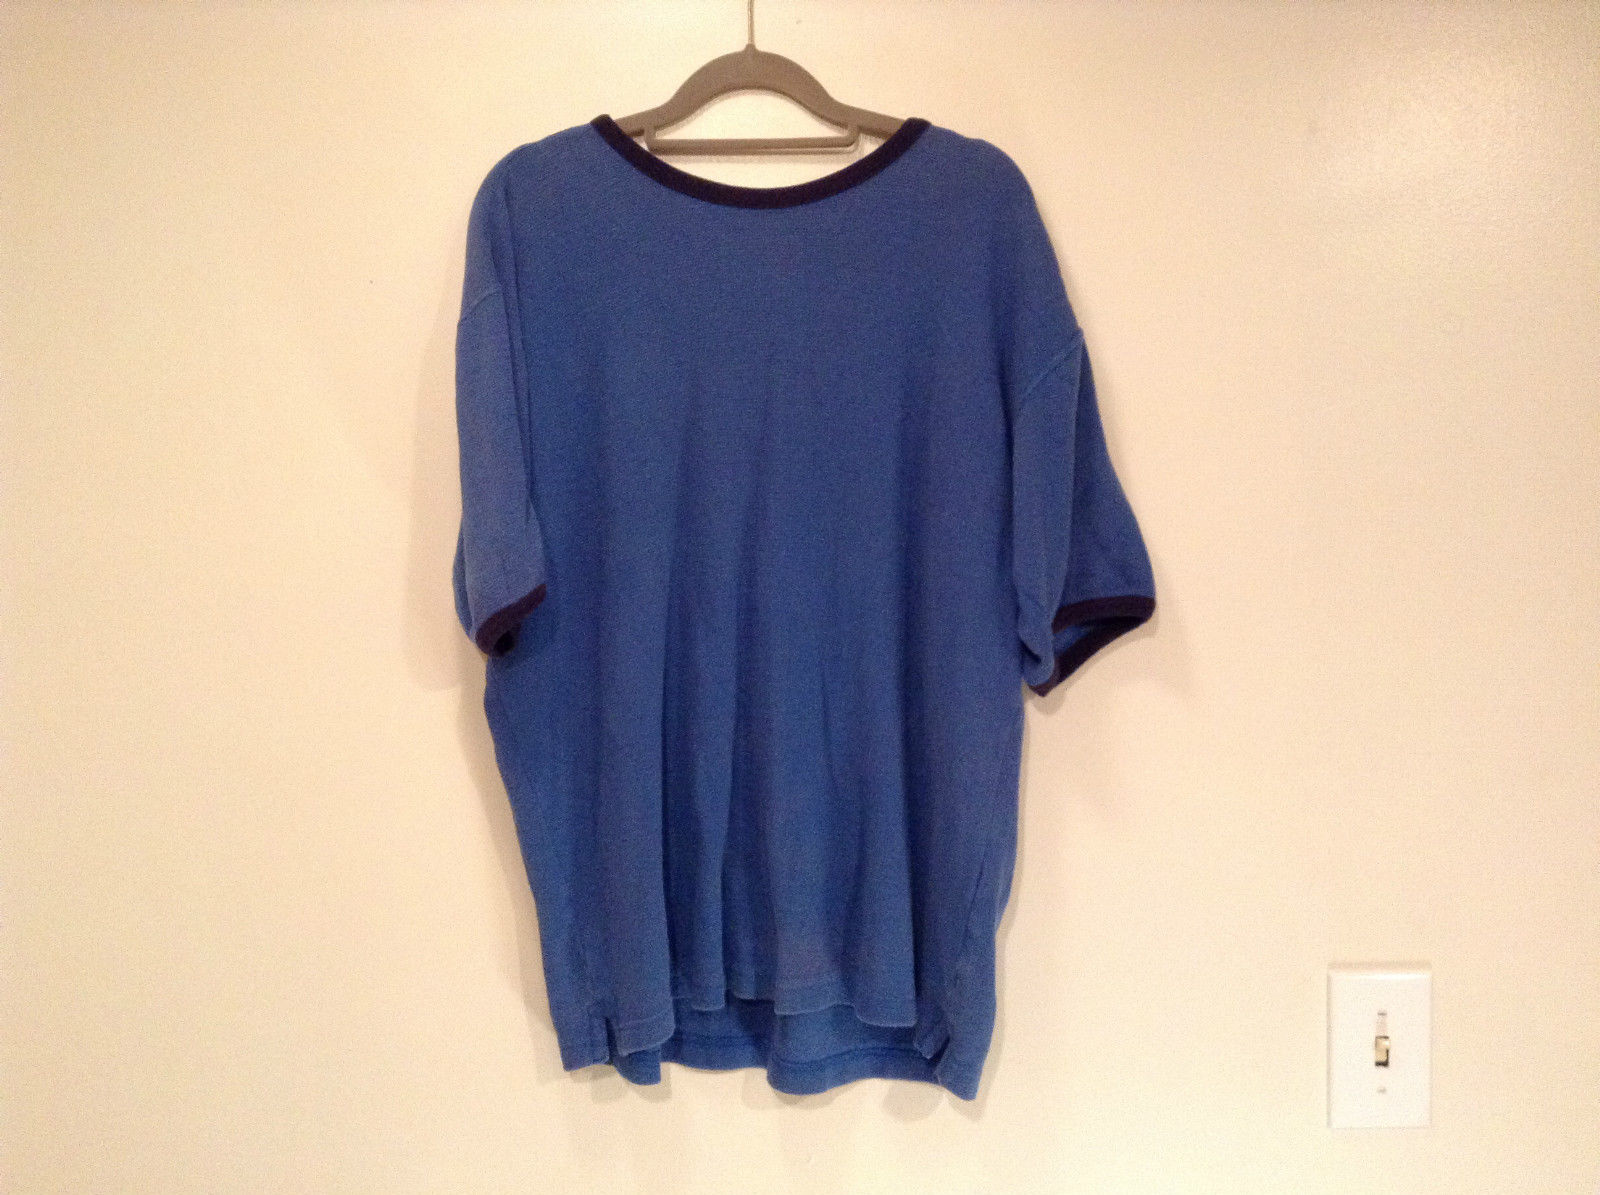 Northwest Territory Blue Short Sleeve Shirt Size Medium 100 Percent Cotton